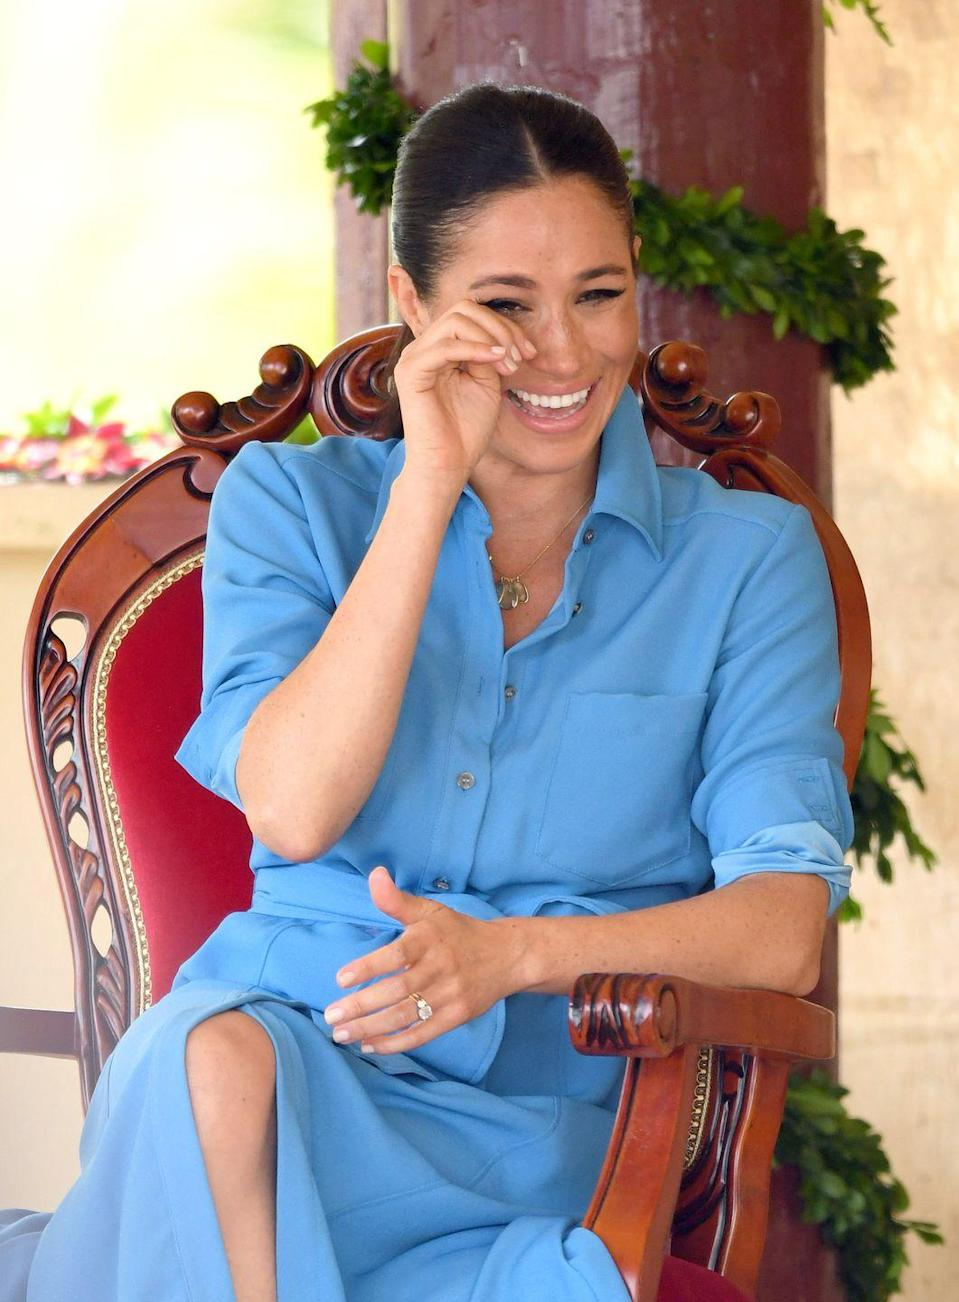 """<p>She literally wept with joy in Tonga while she watched a choir of schoolchildren <a href=""""https://www.harpersbazaar.com/celebrity/latest/a24267194/meghan-markle-prince-harry-laughing-crying-tonga-choir-performance/"""" rel=""""nofollow noopener"""" target=""""_blank"""" data-ylk=""""slk:sing a comedy-style anti-mosquito song"""" class=""""link rapid-noclick-resp"""">sing a comedy-style anti-mosquito song</a>, which tbh we'd quite like brought to the UK during the summer months.</p>"""